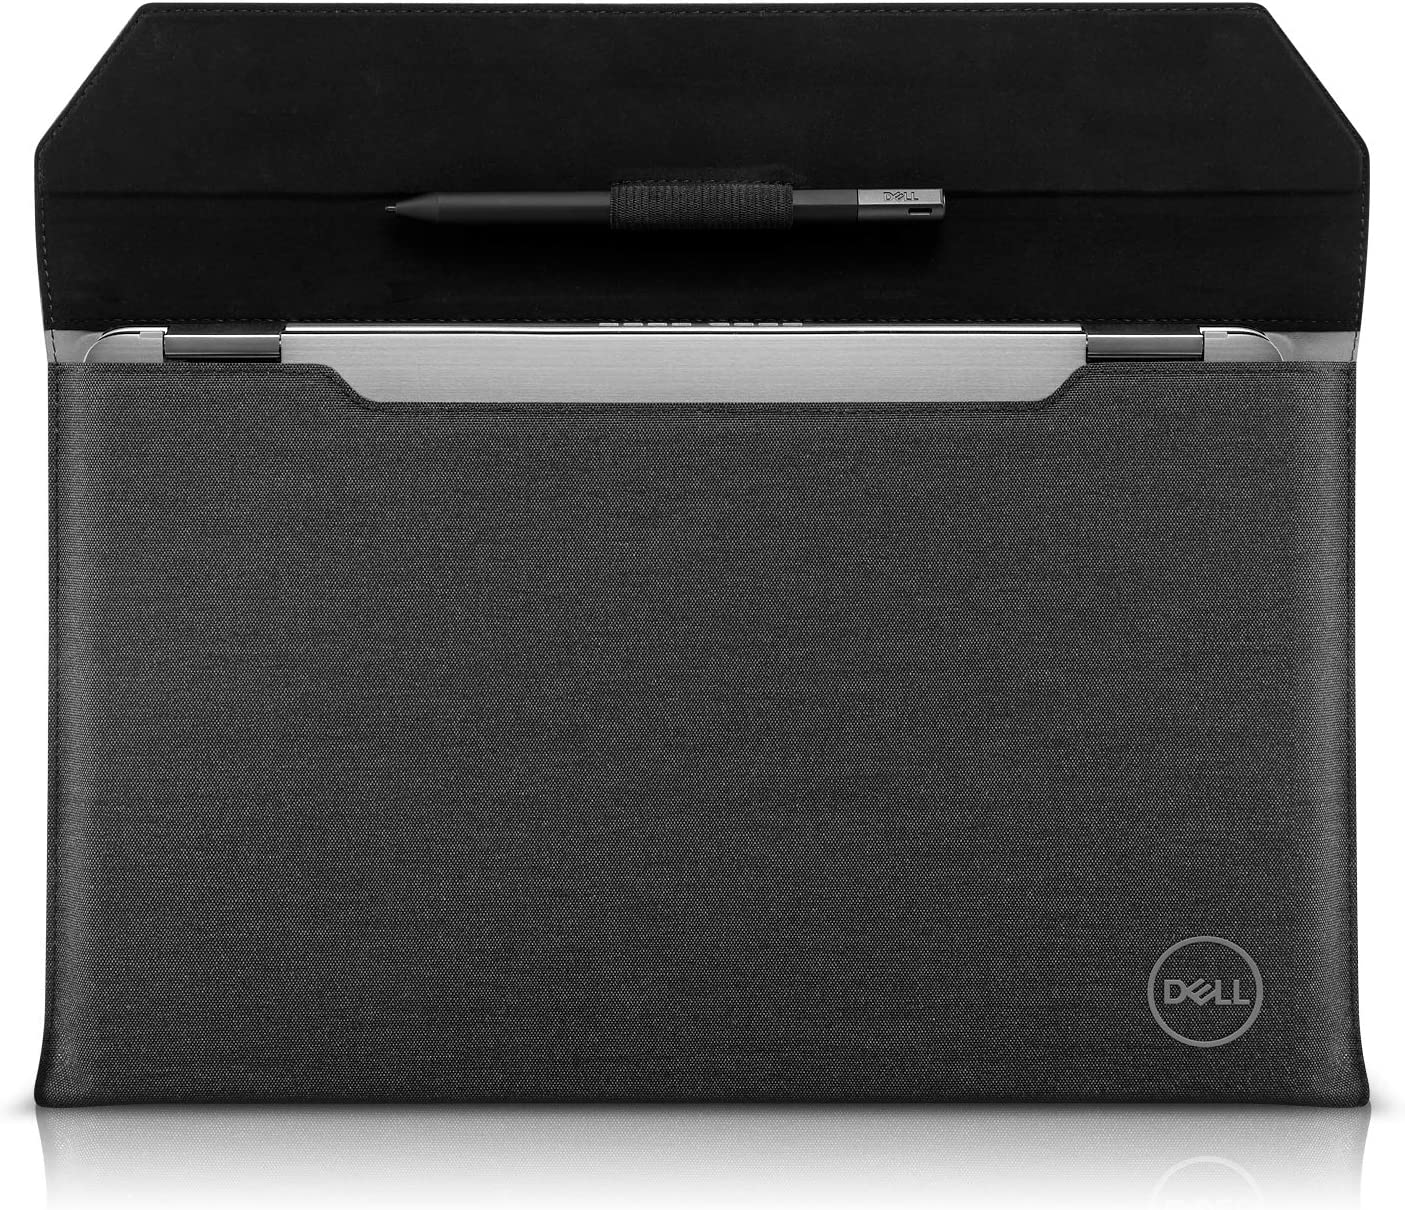 Dell Premier Sleeve 14 (PE1420V) has a Stylish and Contemporary Sleeve Design and Offers Sturdy Protection from for Your Dell Latitude 7400 2-in-1 When You are on-The-go (PE-SV-14-20)